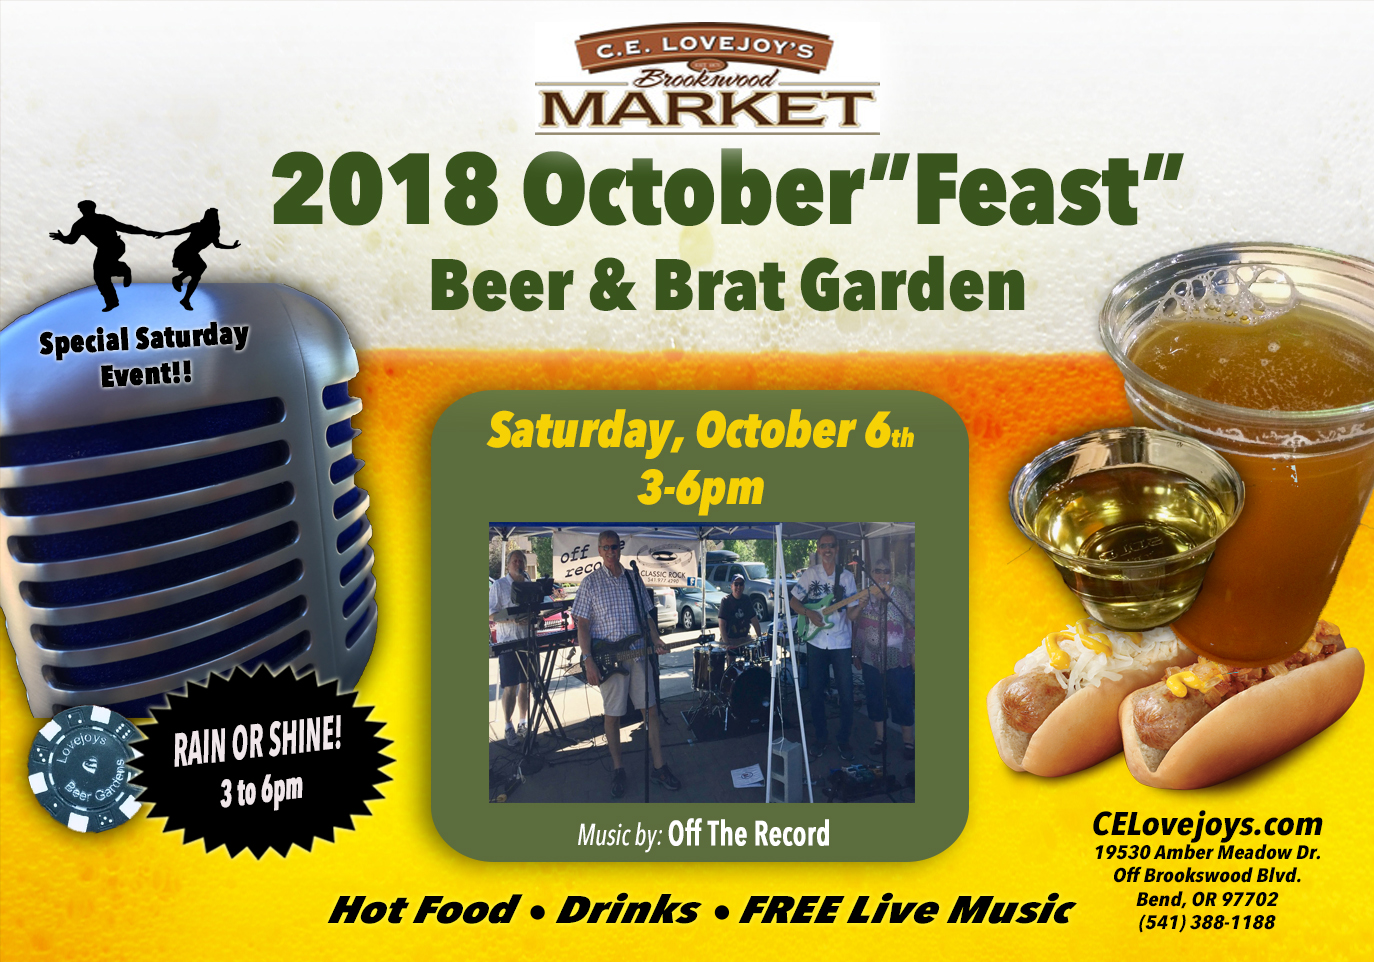 "October""Feast"" Beer & Brat Garden with Live Music @ C.E. Lovejoy's Brookswood Market 